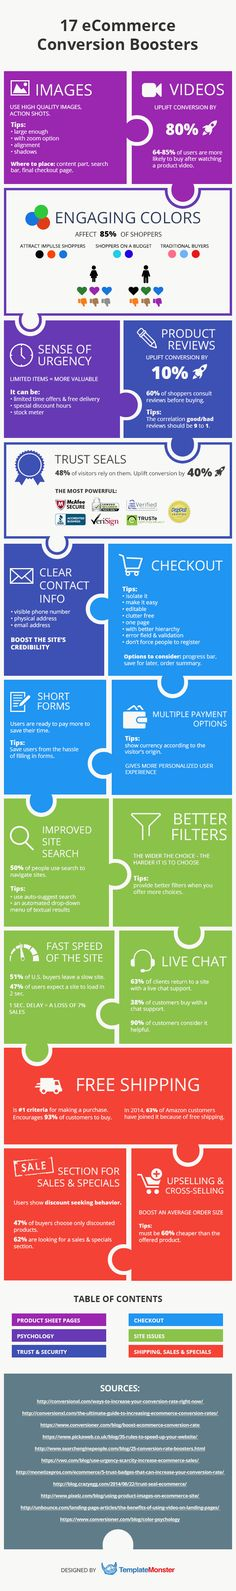 How to improve conversion rate of online store? Learn from 17 eCommerce Conversion Boosters Infographic.